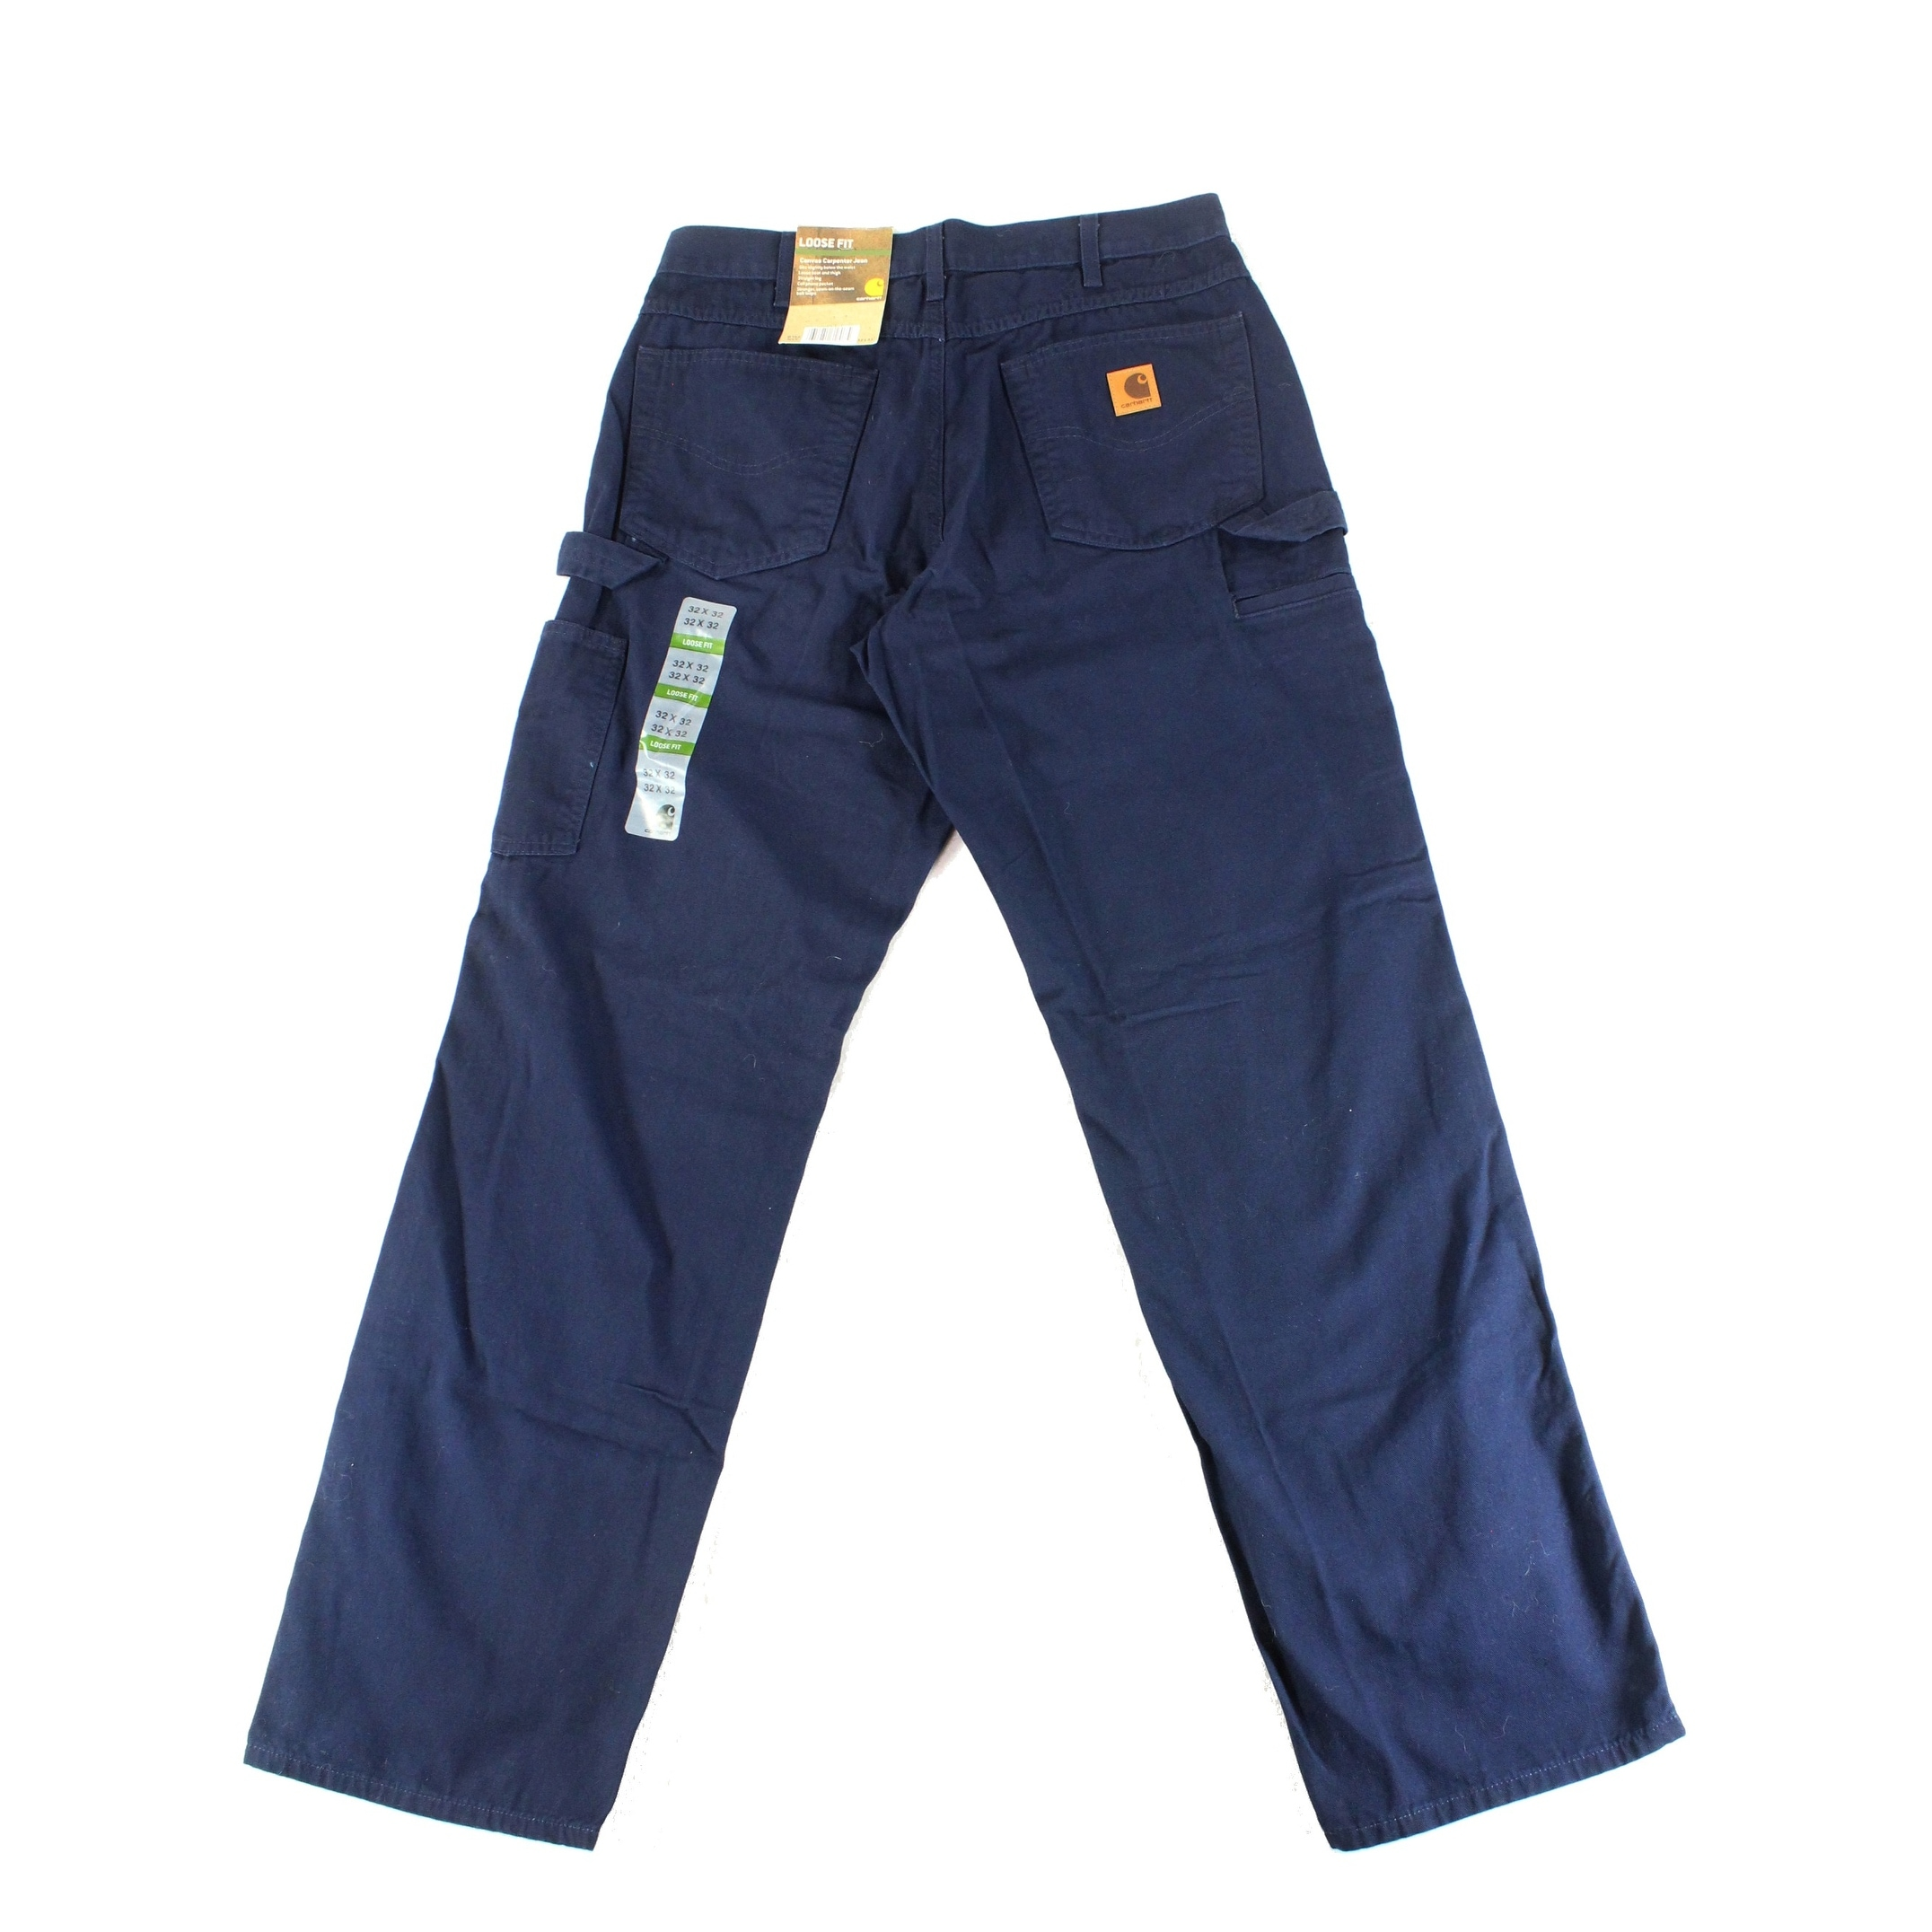 15ea3ceda Shop Carhartt Blue Mens Size 32X32 Loose Fit Canvas Carpenter Jeans - Ships  To Canada - Overstock - 27315968